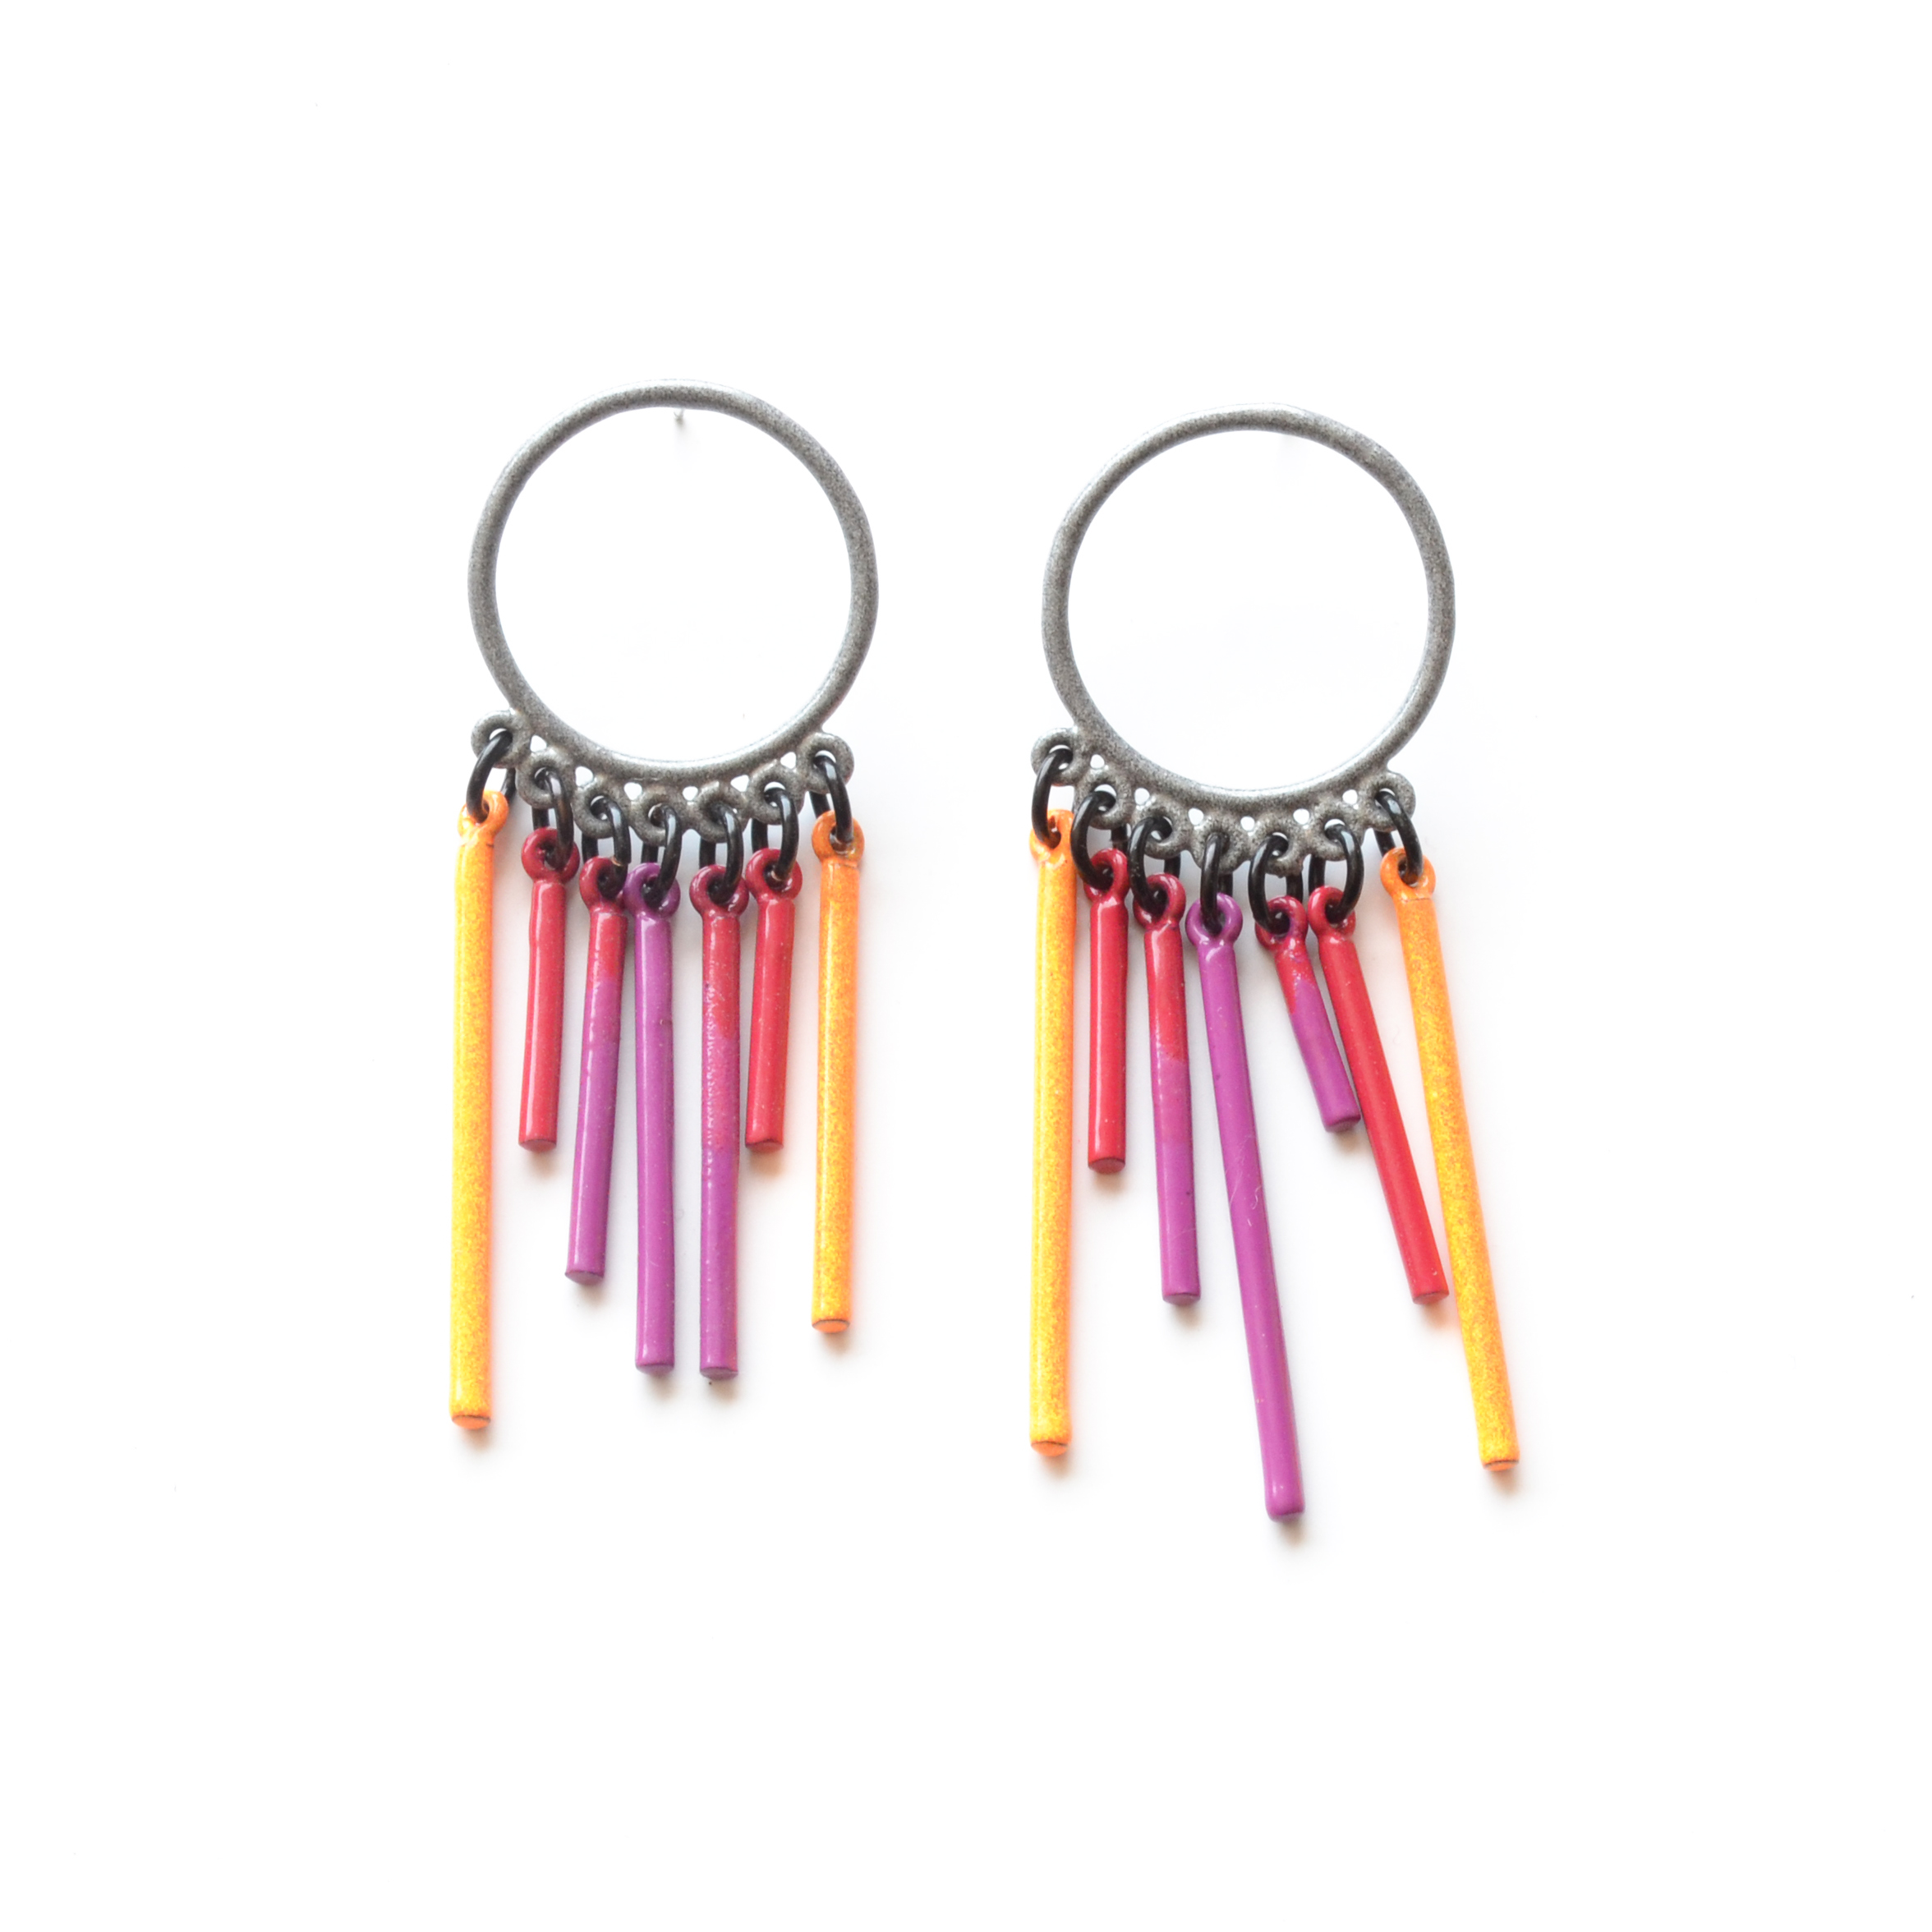 fringe earrings stripped lele sadoughi striped products